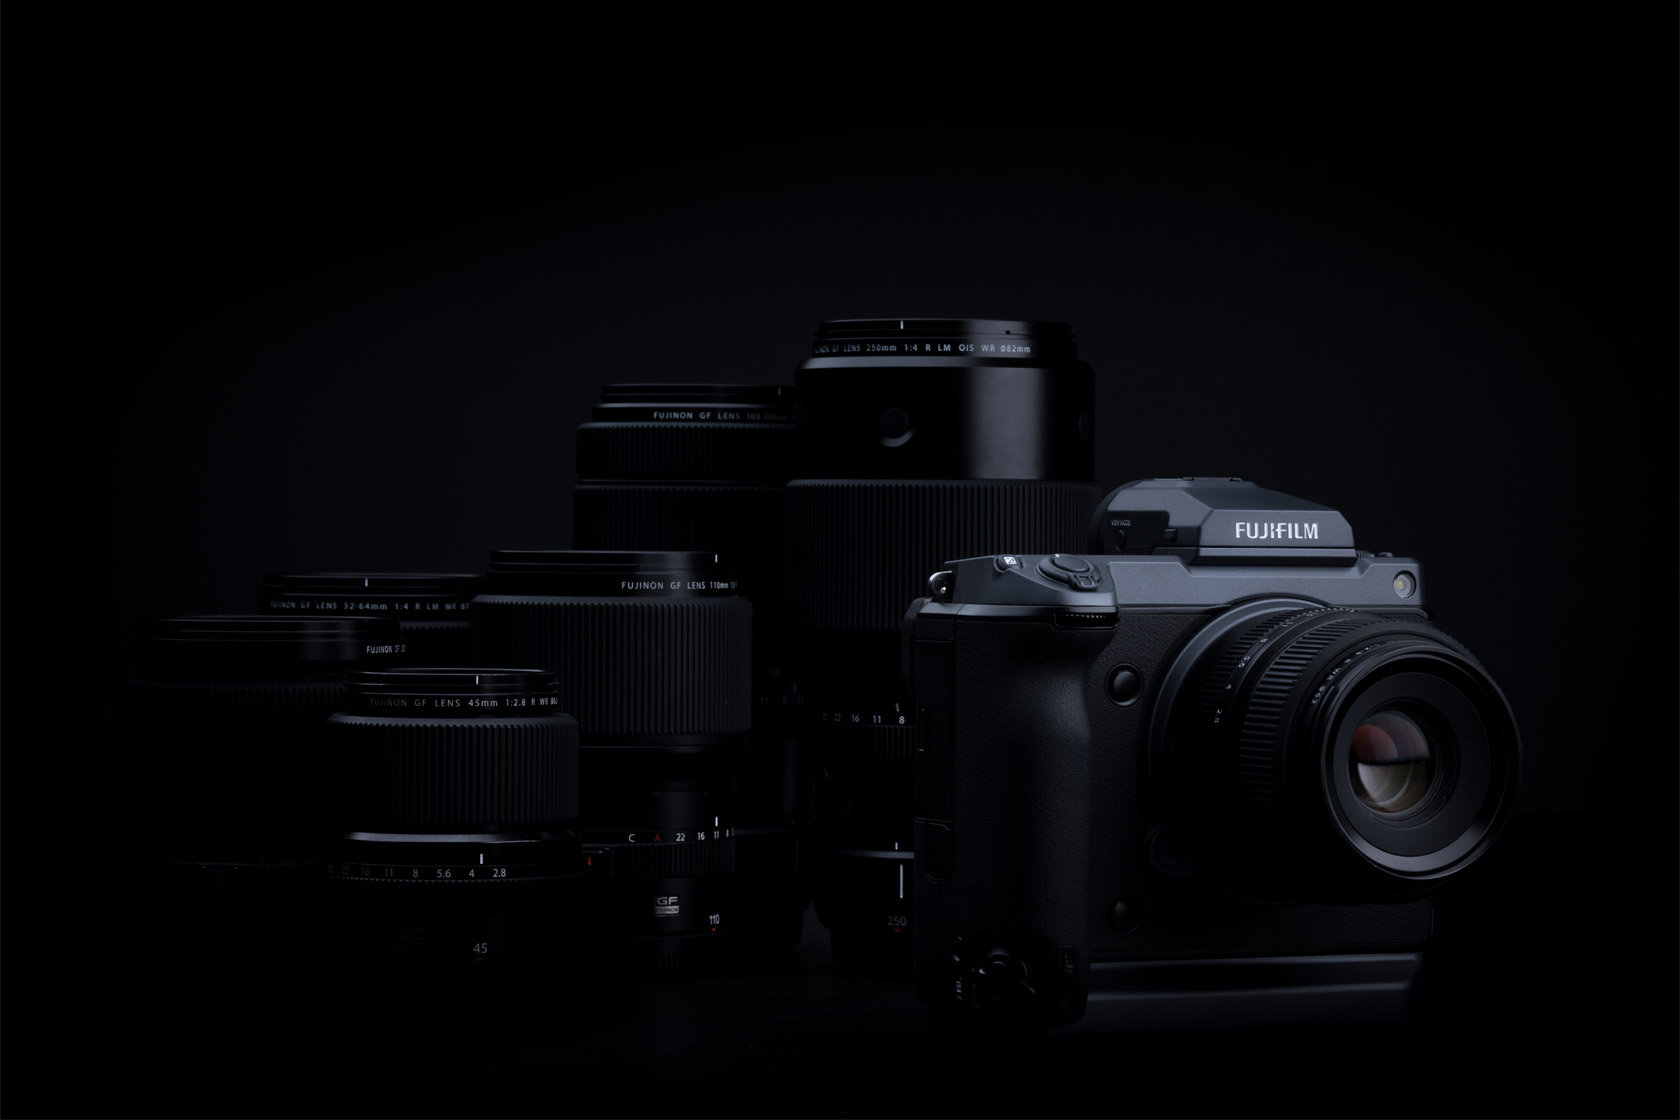 Picture of GFX camera and lenses